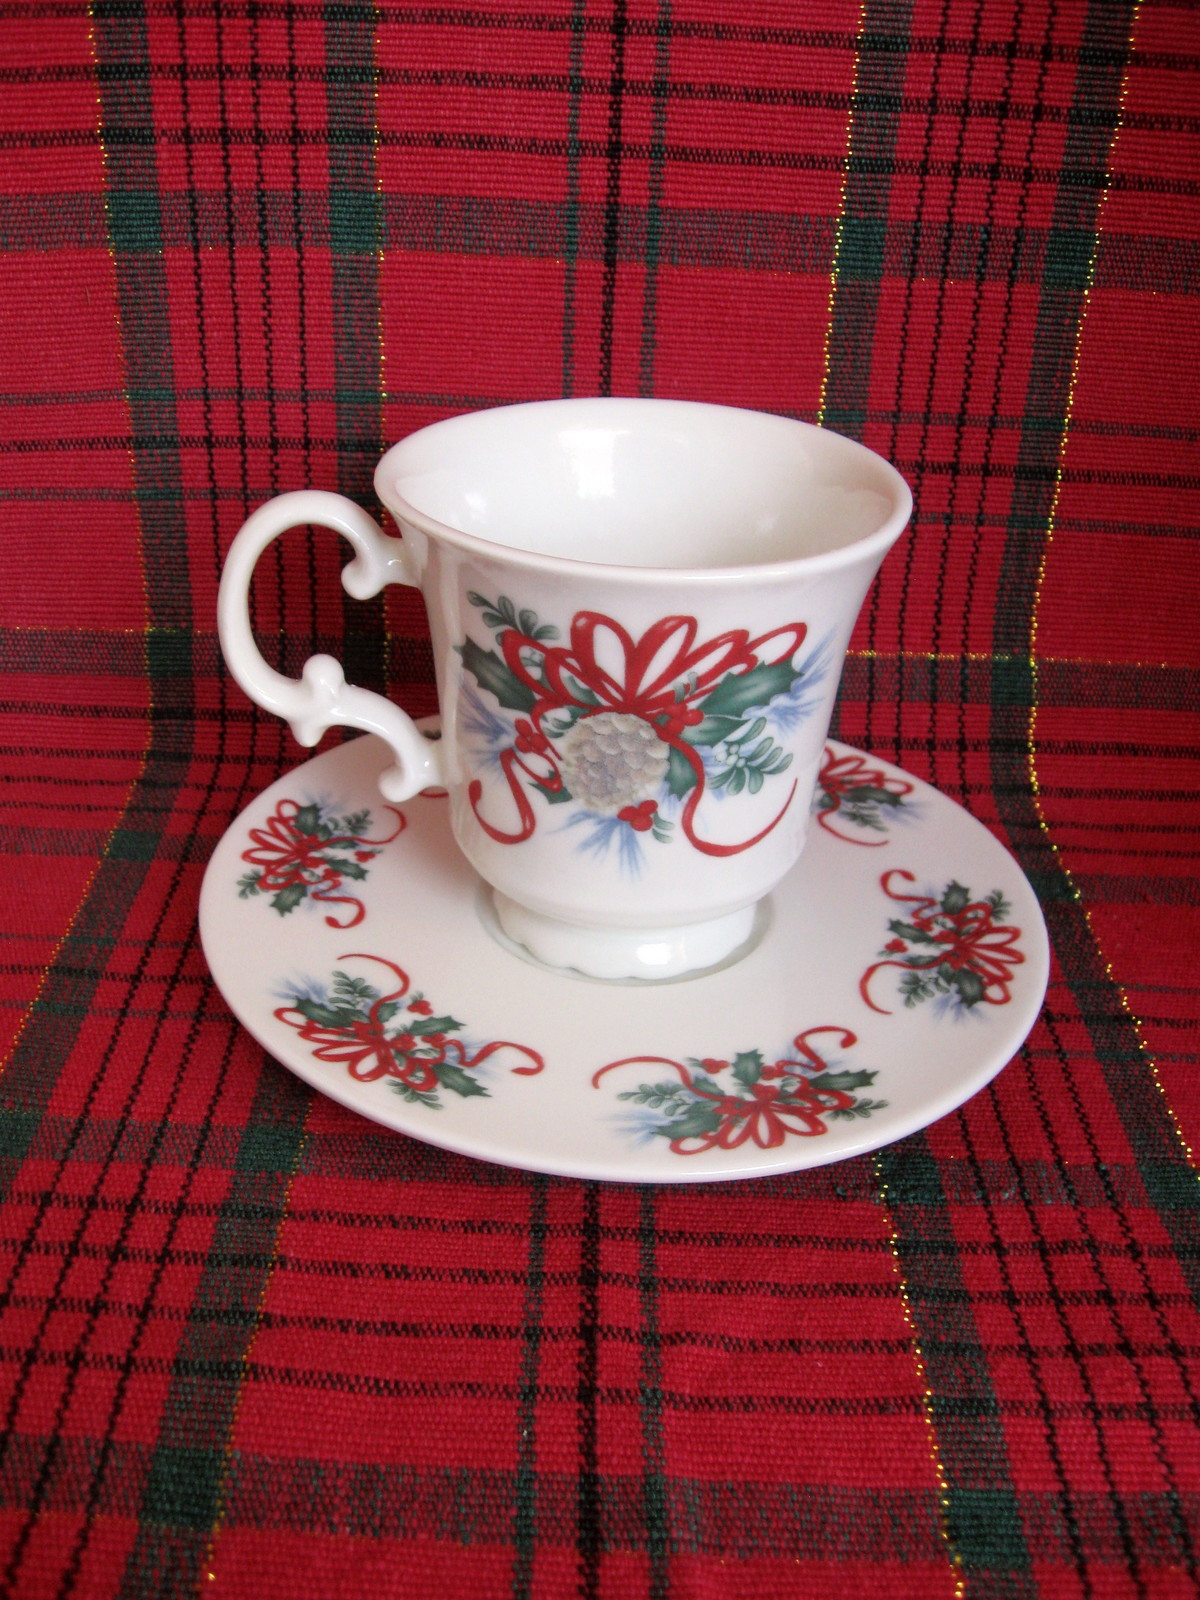 Christmas Holly and Ribbon Cup and Saucer Sets - Six (6) Available